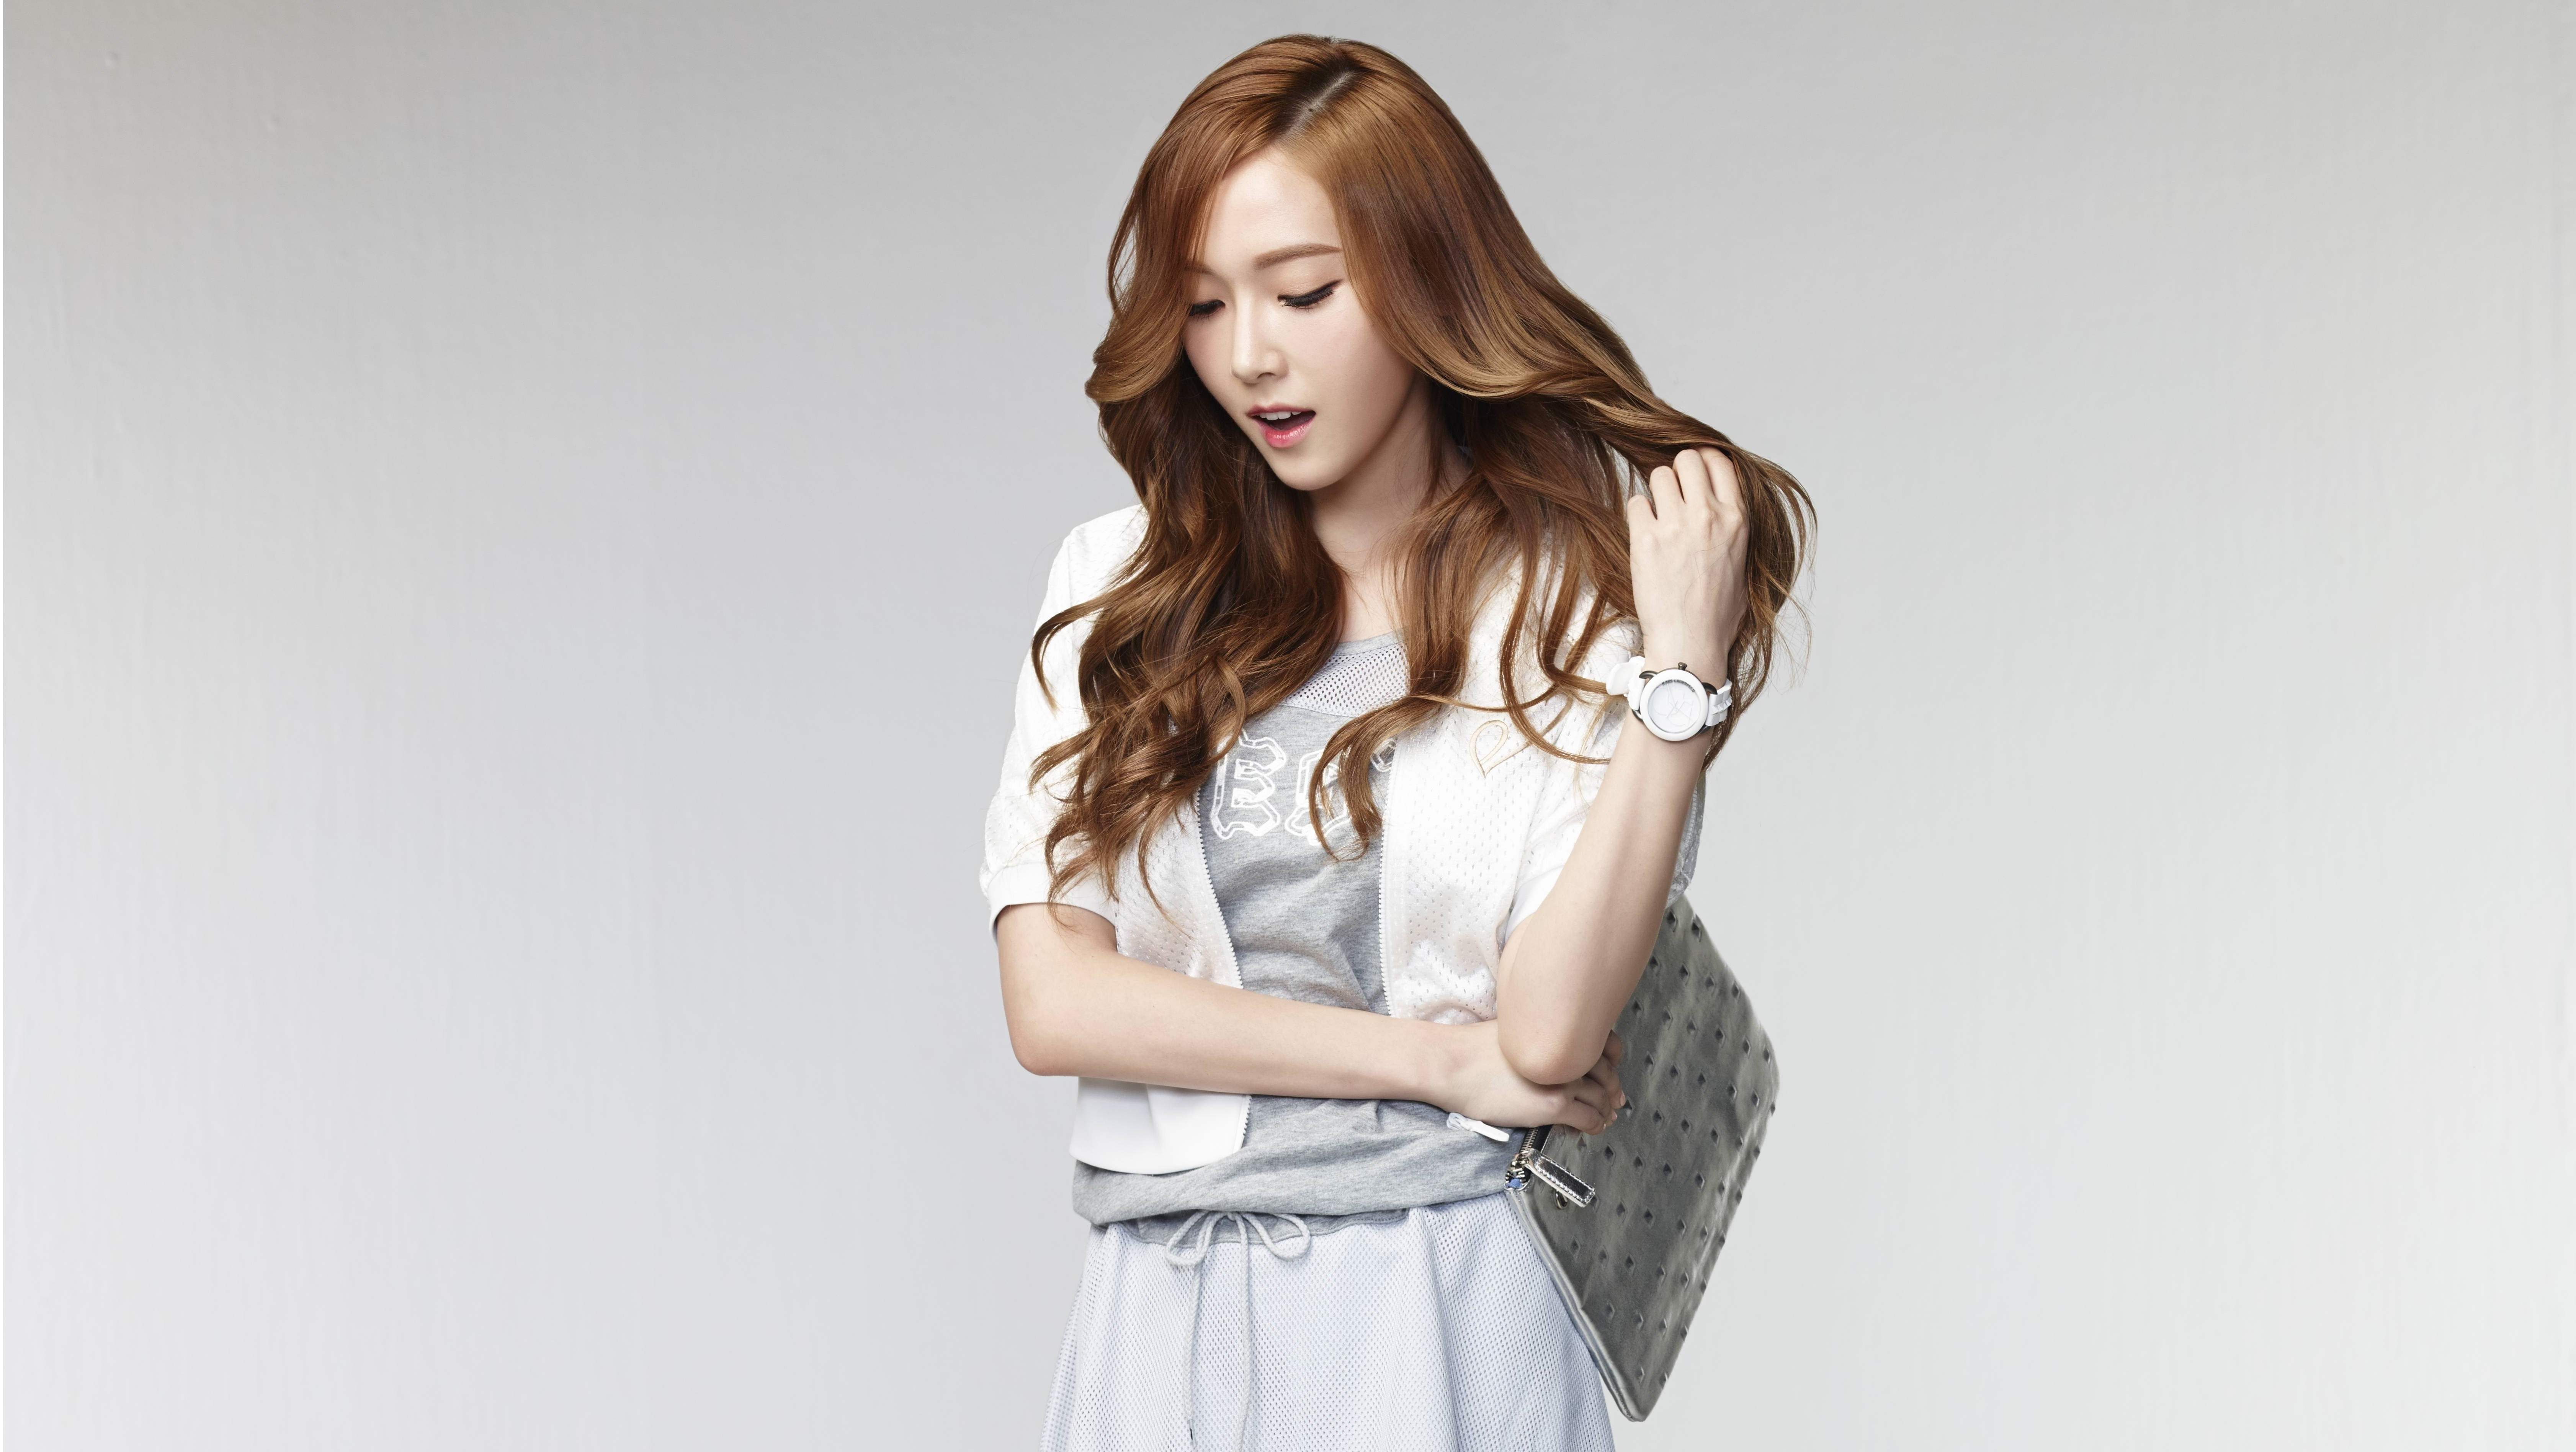 Jessica Jung Wallpaper Image Group 42 6728x3792